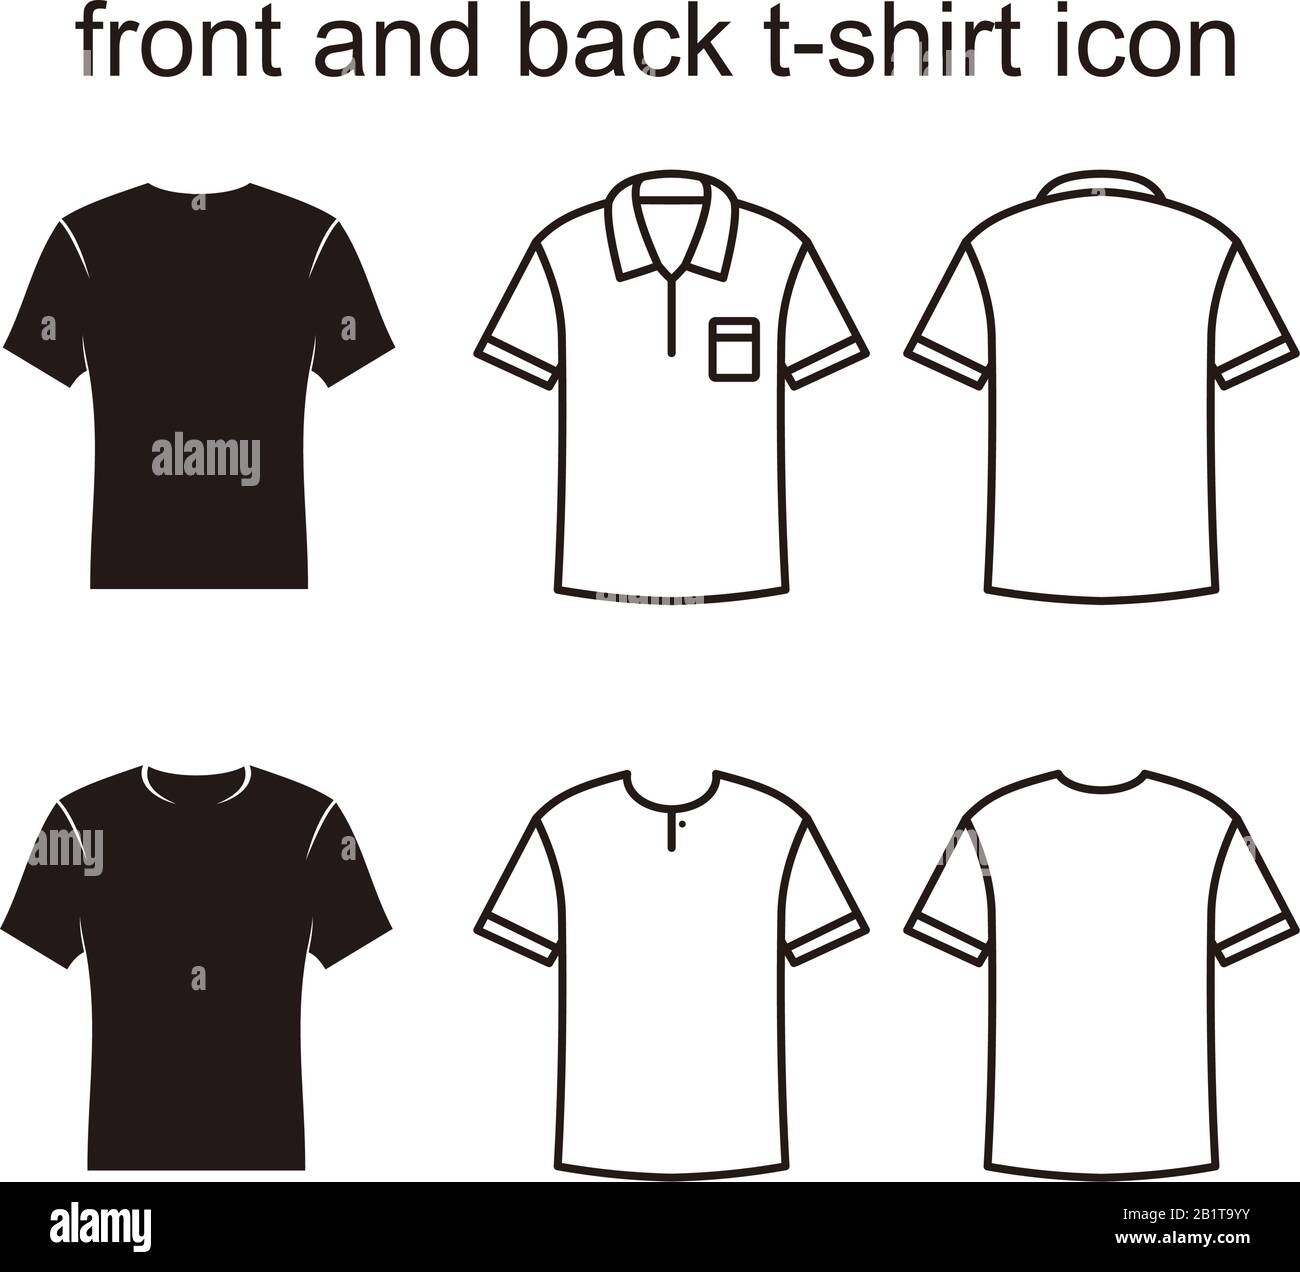 front and back t shirt icon vector illustration for graphic and web design stock vector image art alamy https www alamy com front and back t shirt icon vector illustration for graphic and web design image345356703 html